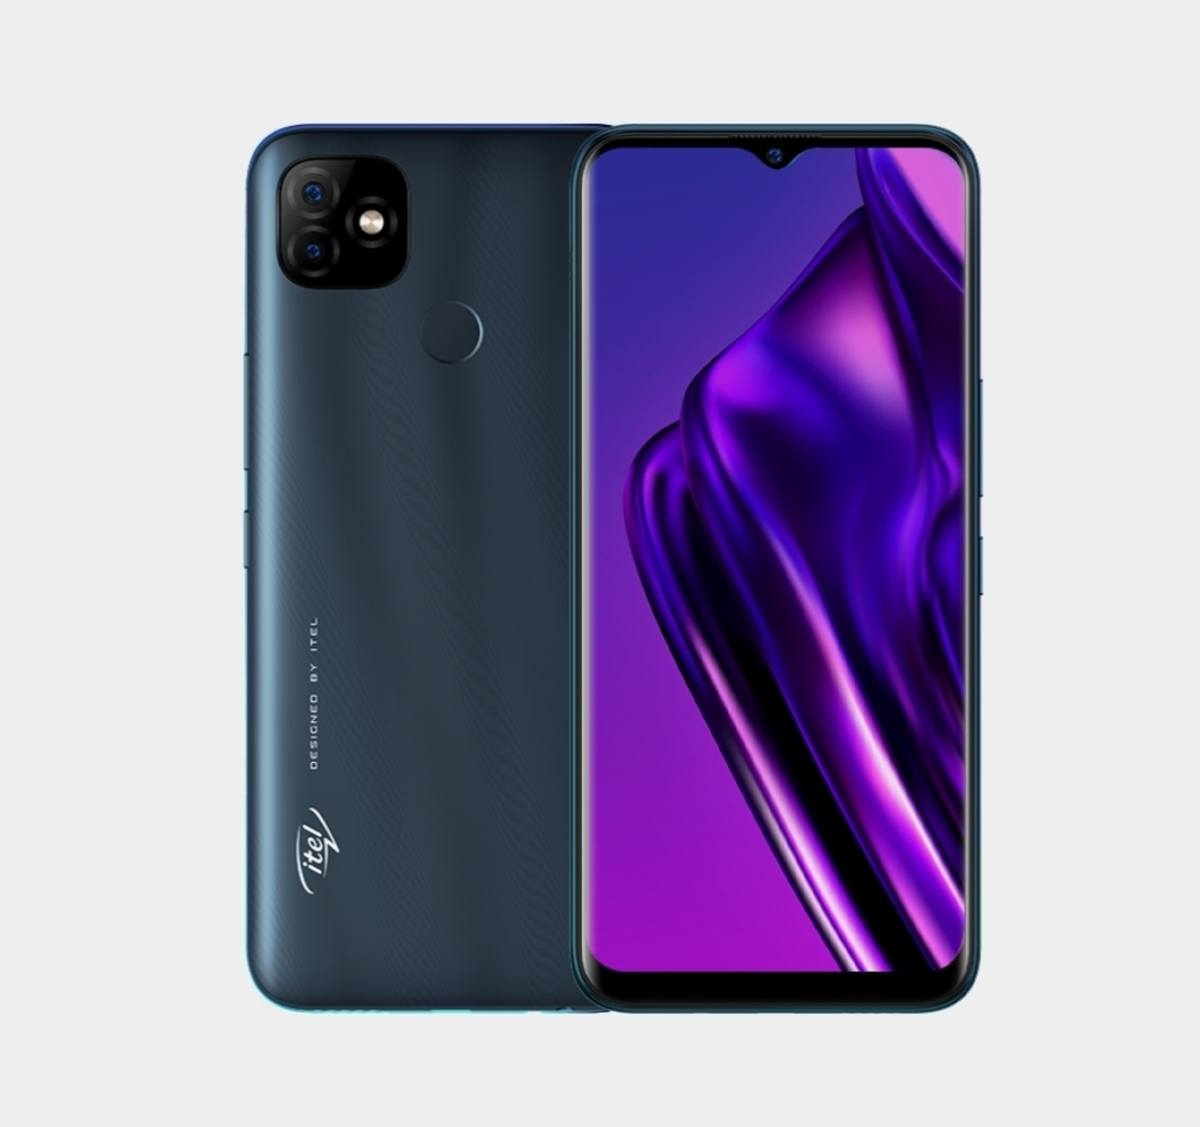 Itel P36 Pro LTE, Itel P36 Pro, Itel P36 Pro price in Nigeria, price of itel p36 pro in Nigeria, how much is itel p36 pro in Nigeria, itel p36 pro LTE price in slot, itel p36 pro LTE specs and price in Nigeria, Itel p36 pro specs, itel p36 pro price, Itel P36 Pro LTE specification, Itel P36 Pro LTE and price in Nigeria, specs and price of itel p36 pro LTE, Itel P36 Pro full specification